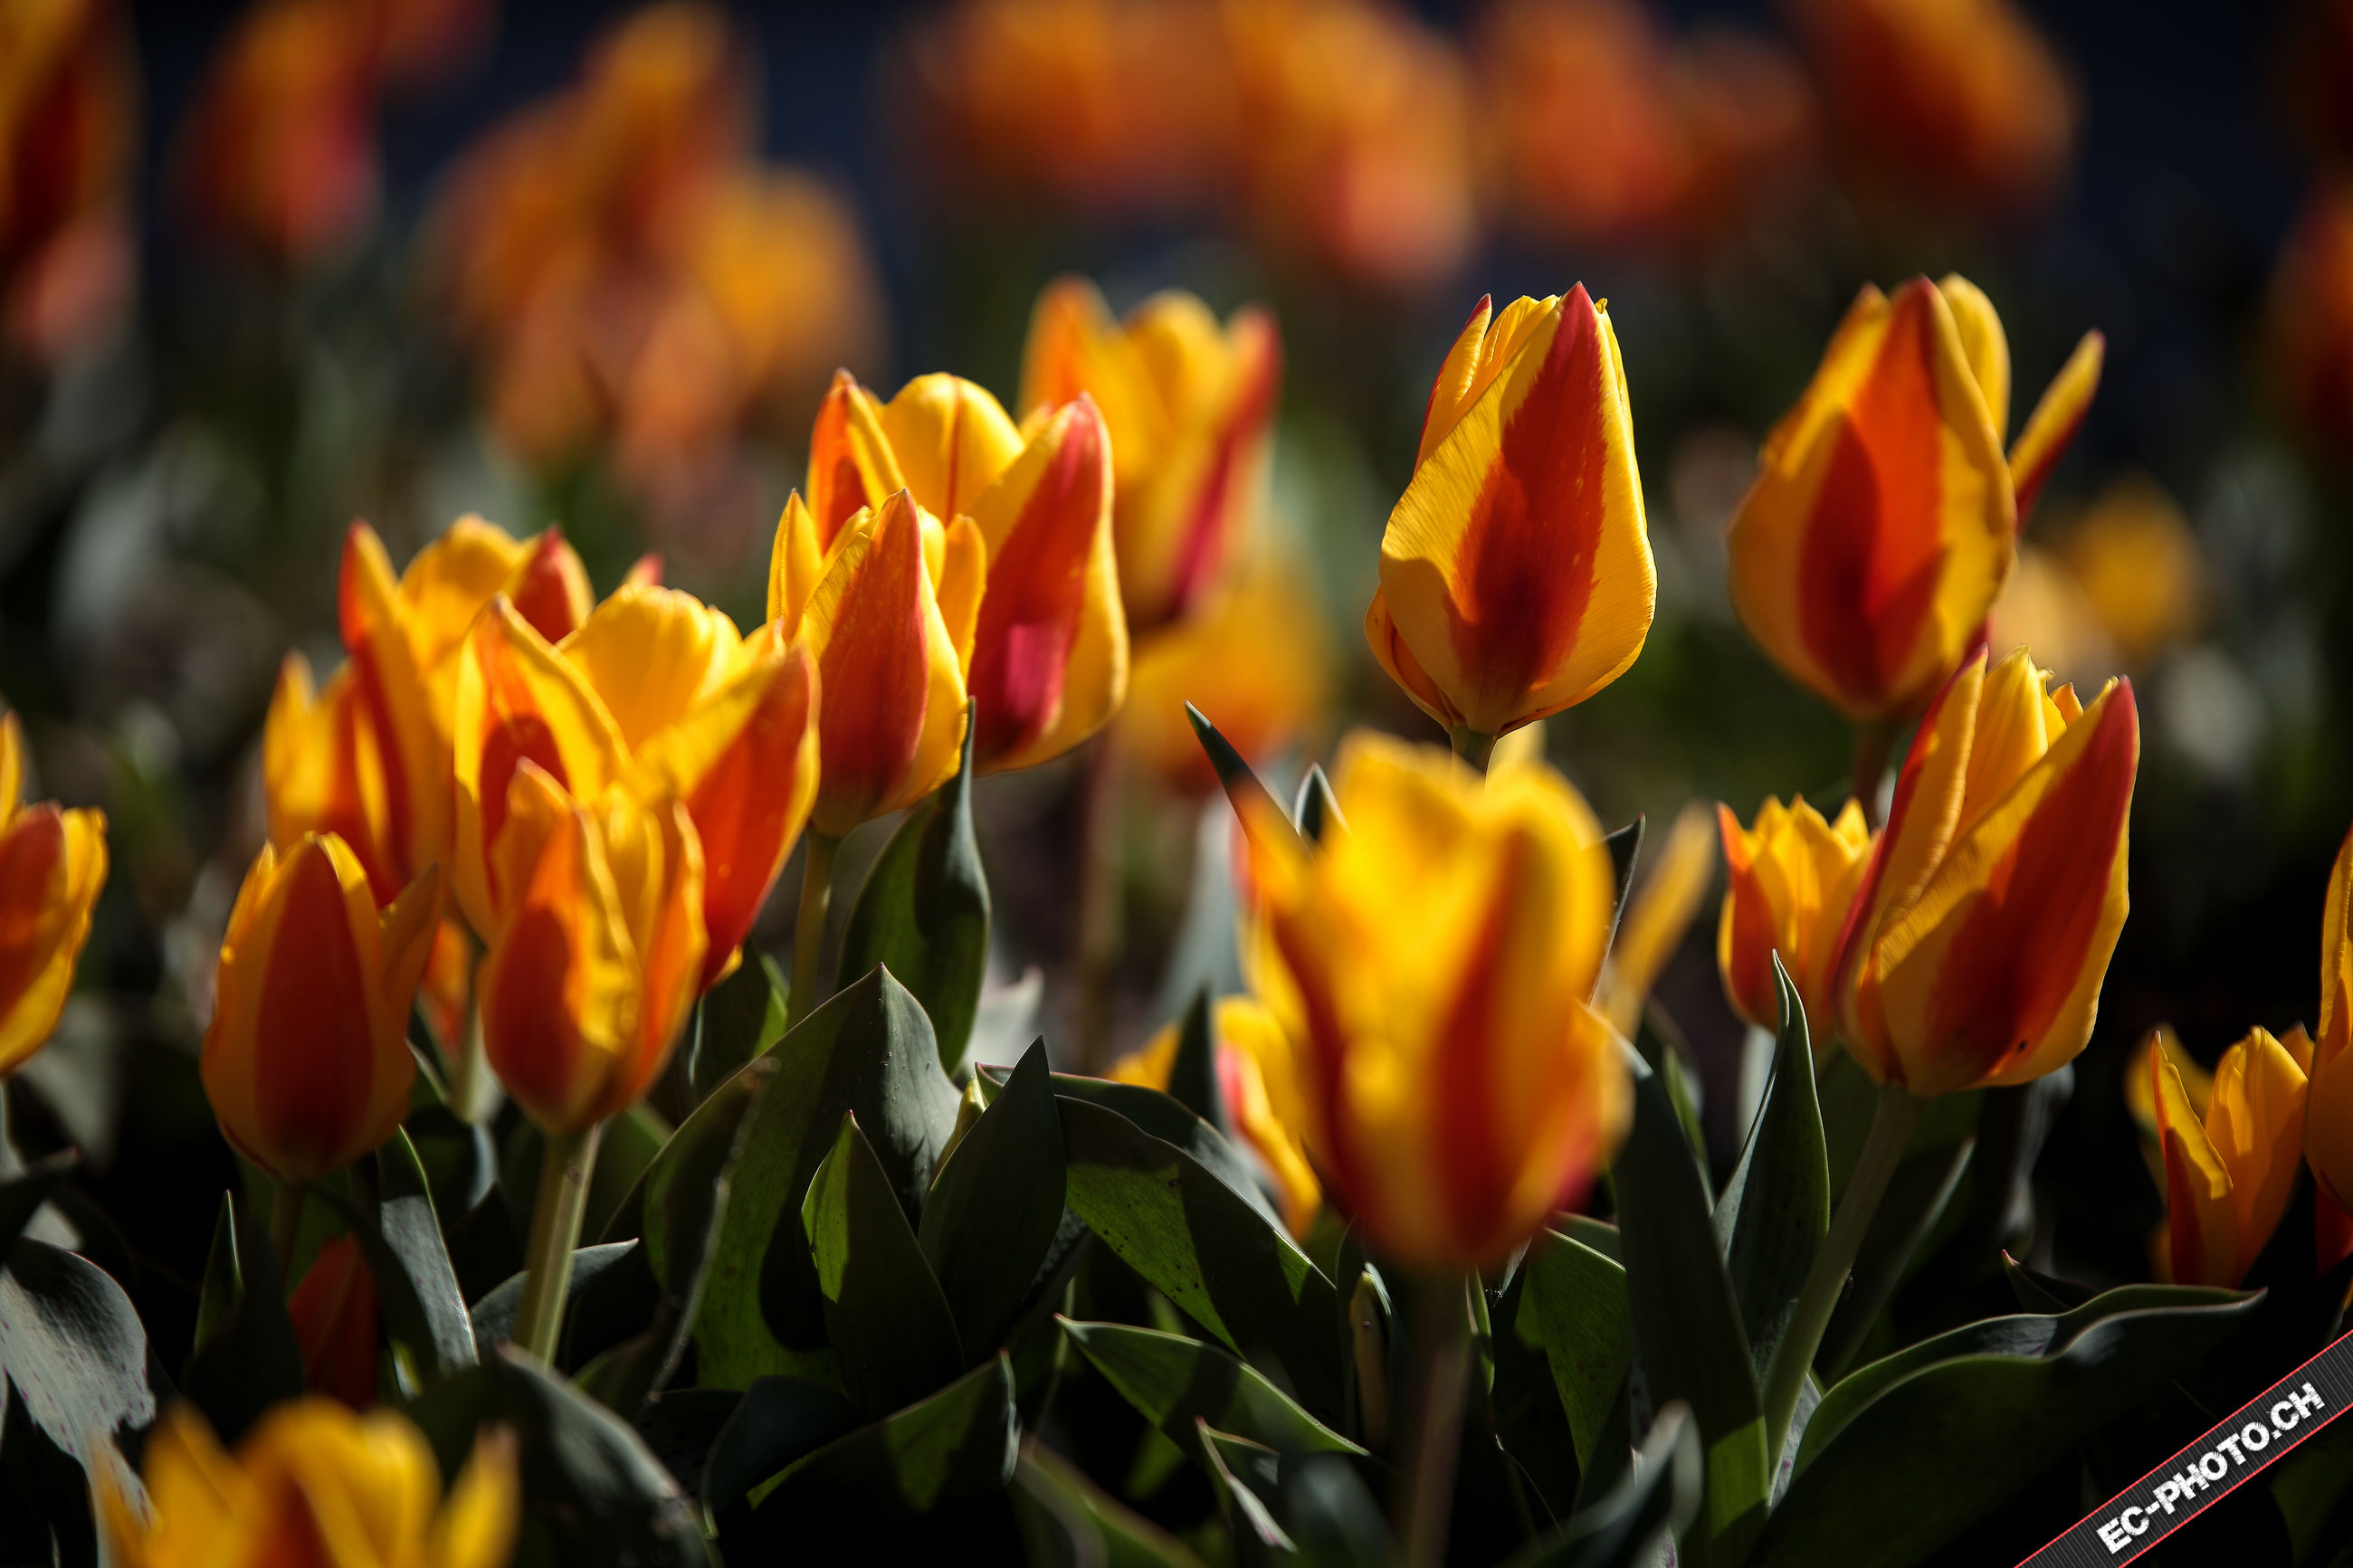 flower, freshness, petal, growth, yellow, fragility, beauty in nature, flower head, tulip, focus on foreground, blooming, plant, nature, close-up, orange color, leaf, stem, park - man made space, field, outdoors